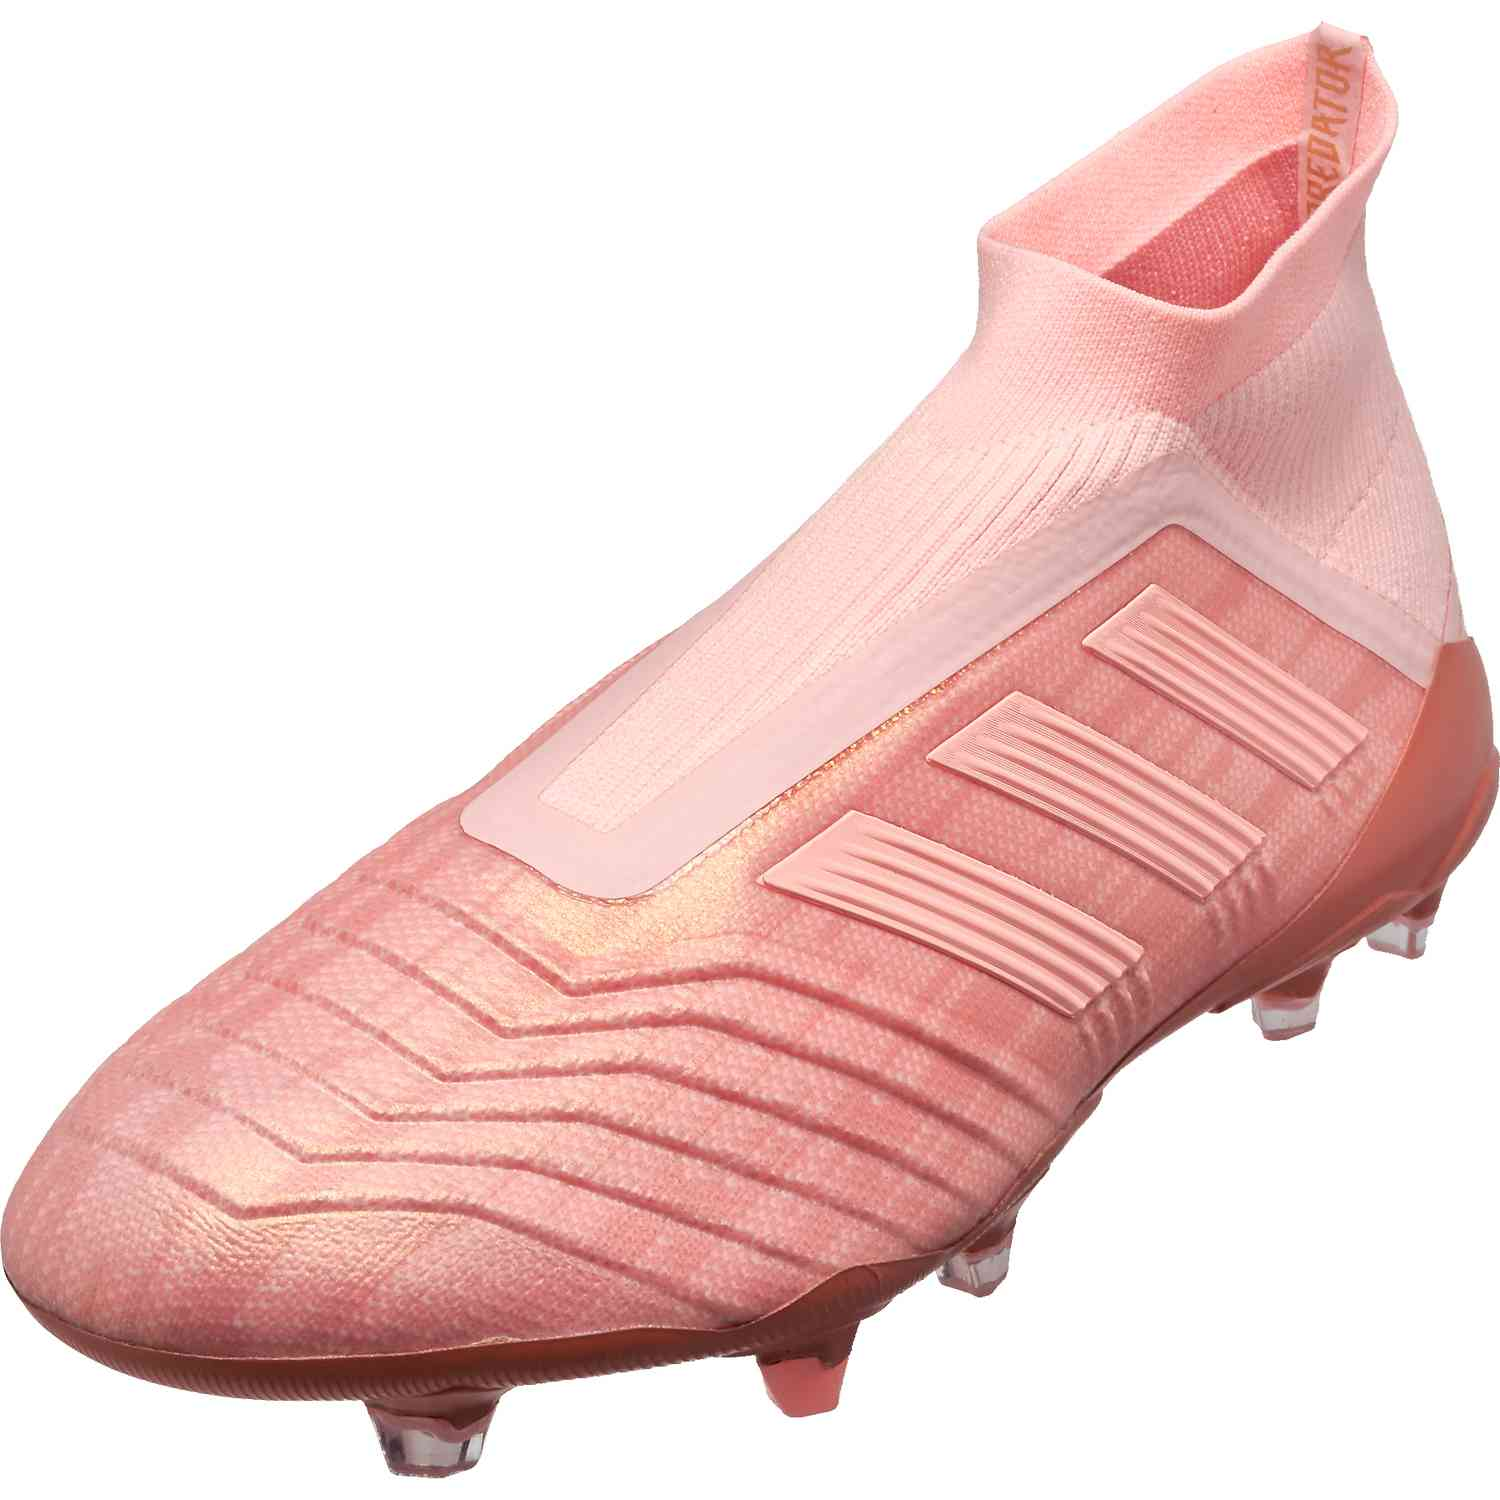 new arrival d31a9 4a383 adidas Predator 18+ FG - Clear Orange/Trace Pink - Soccer ...